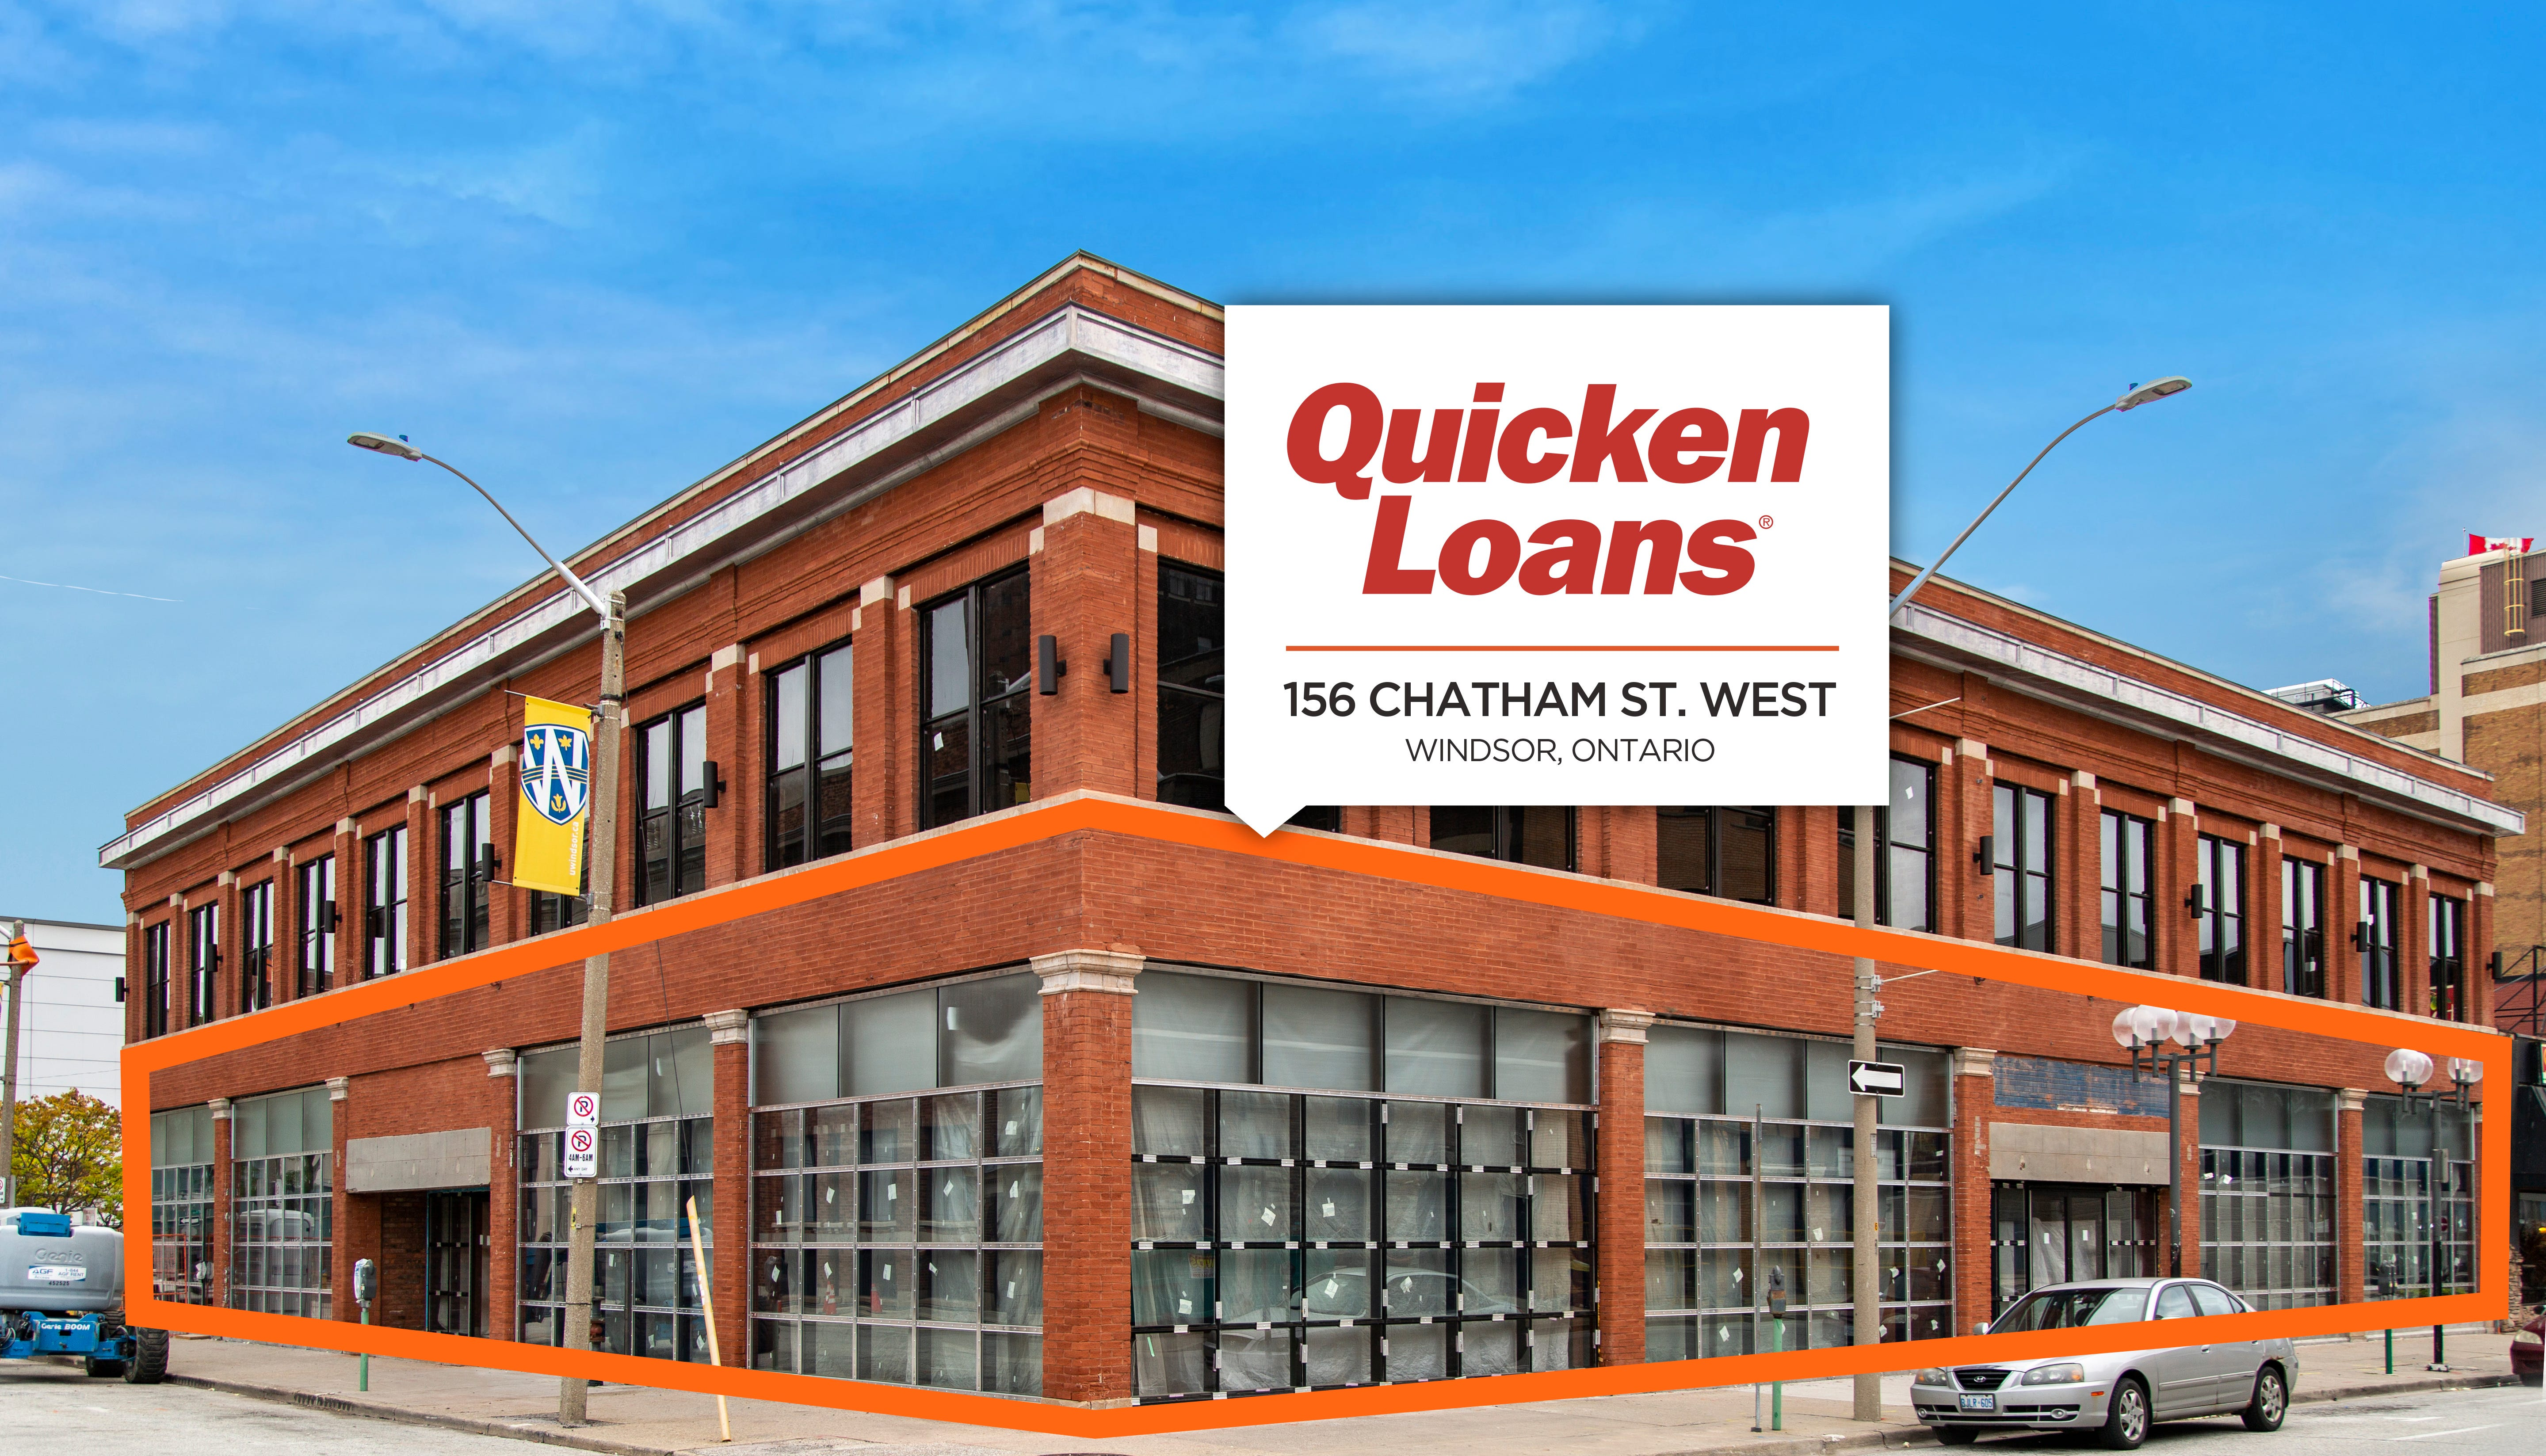 Quicken Loans to open Windsor office